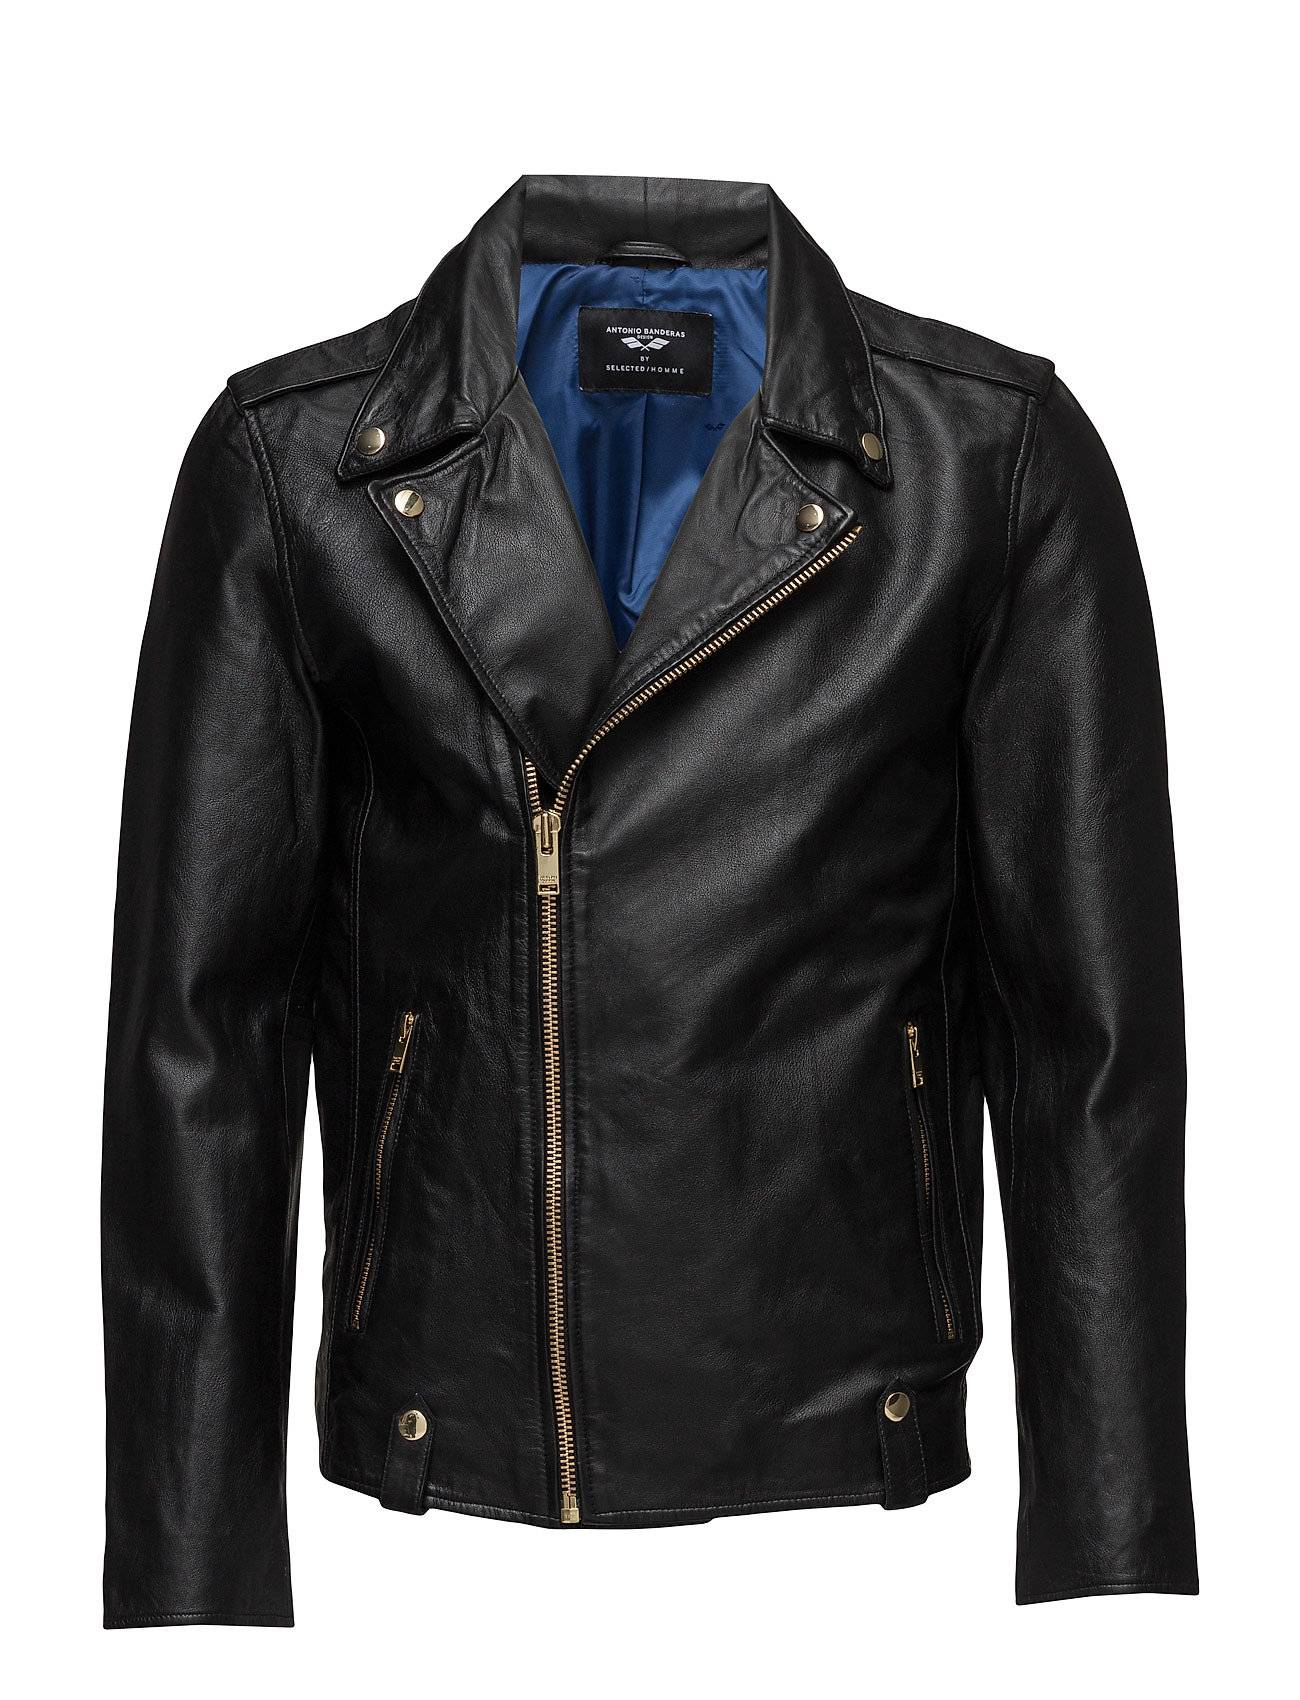 Selected Homme Ab New Biker Gold Leather Jacket